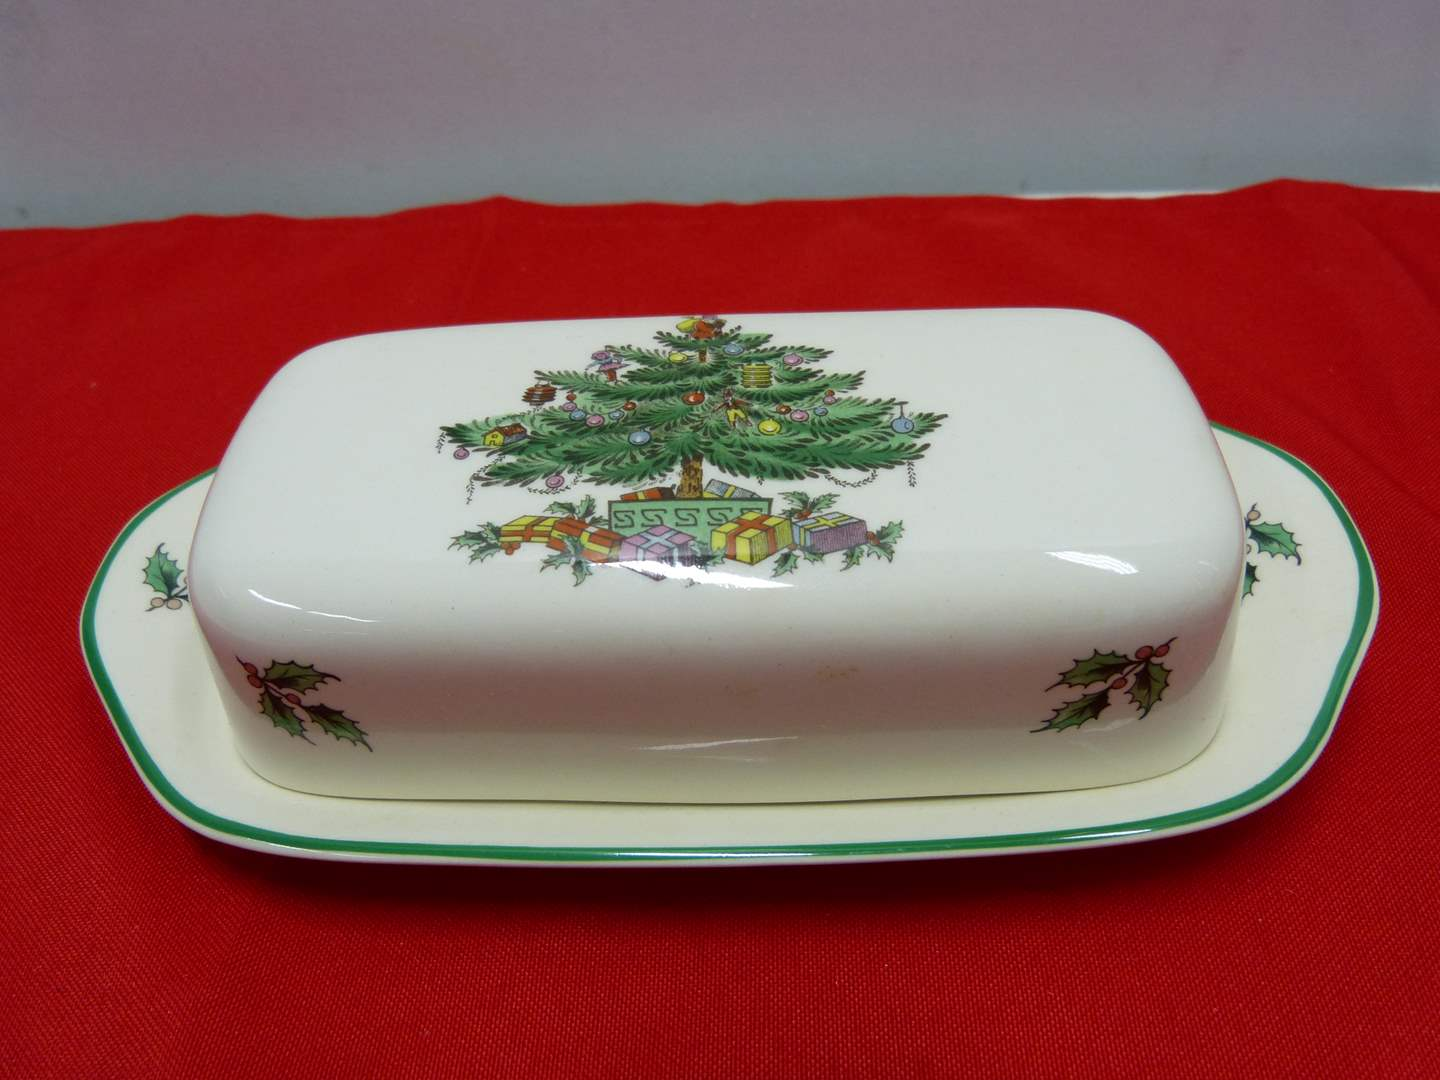 """Lot # 80  Spode """"Christmas Tree"""" Made in England 1/4 pound butter dish (main image)"""